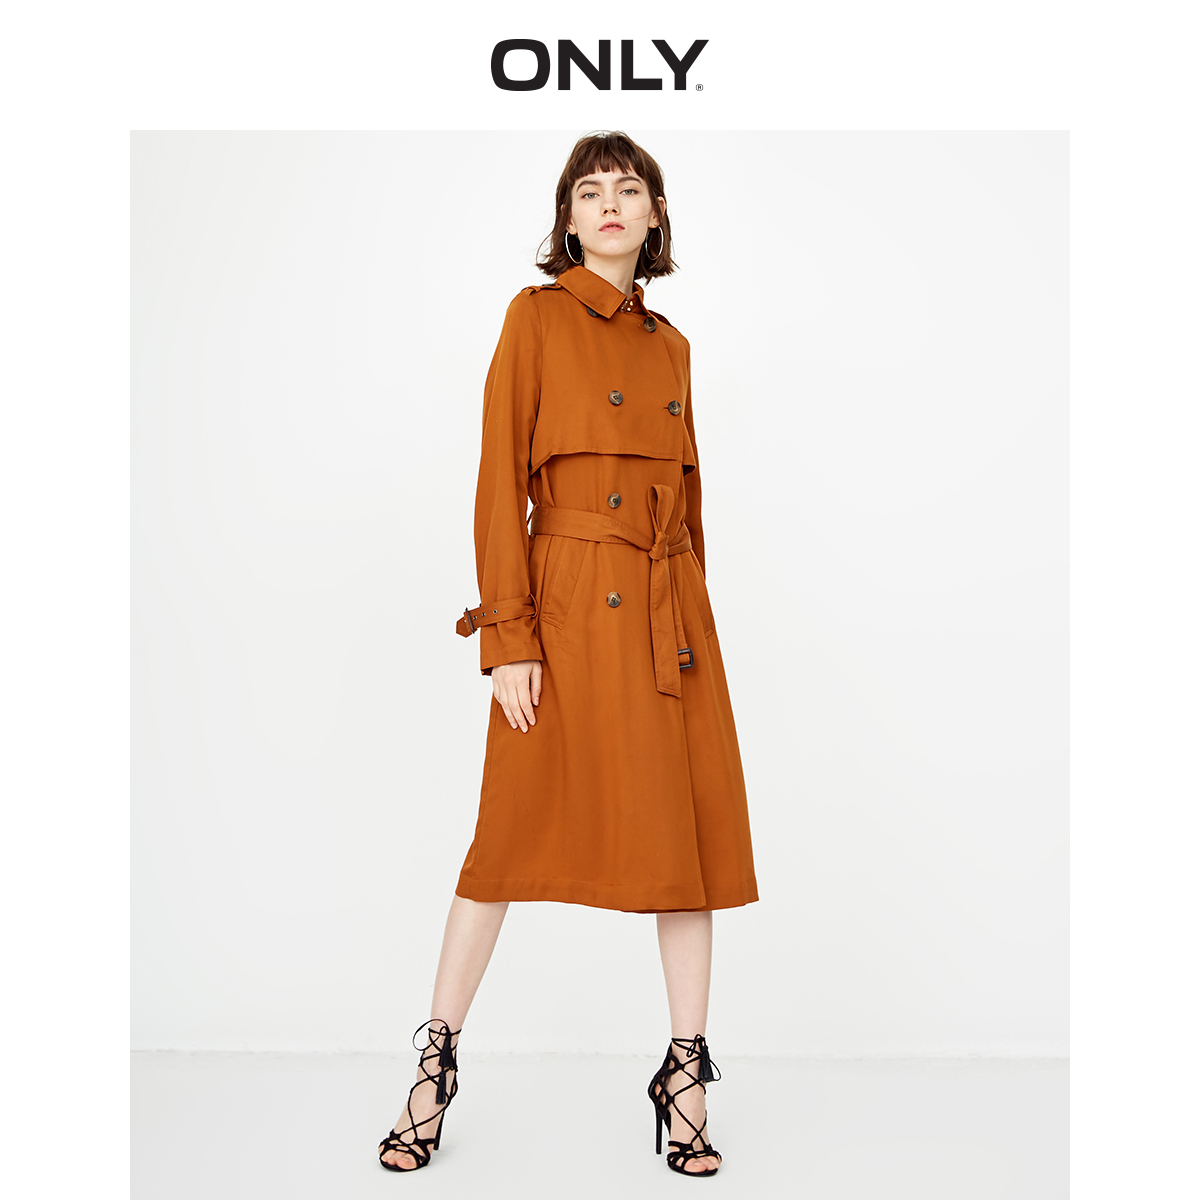 ONLY Women's Double-breasted Lace-up Cinched Waist Wind Coat   118336508